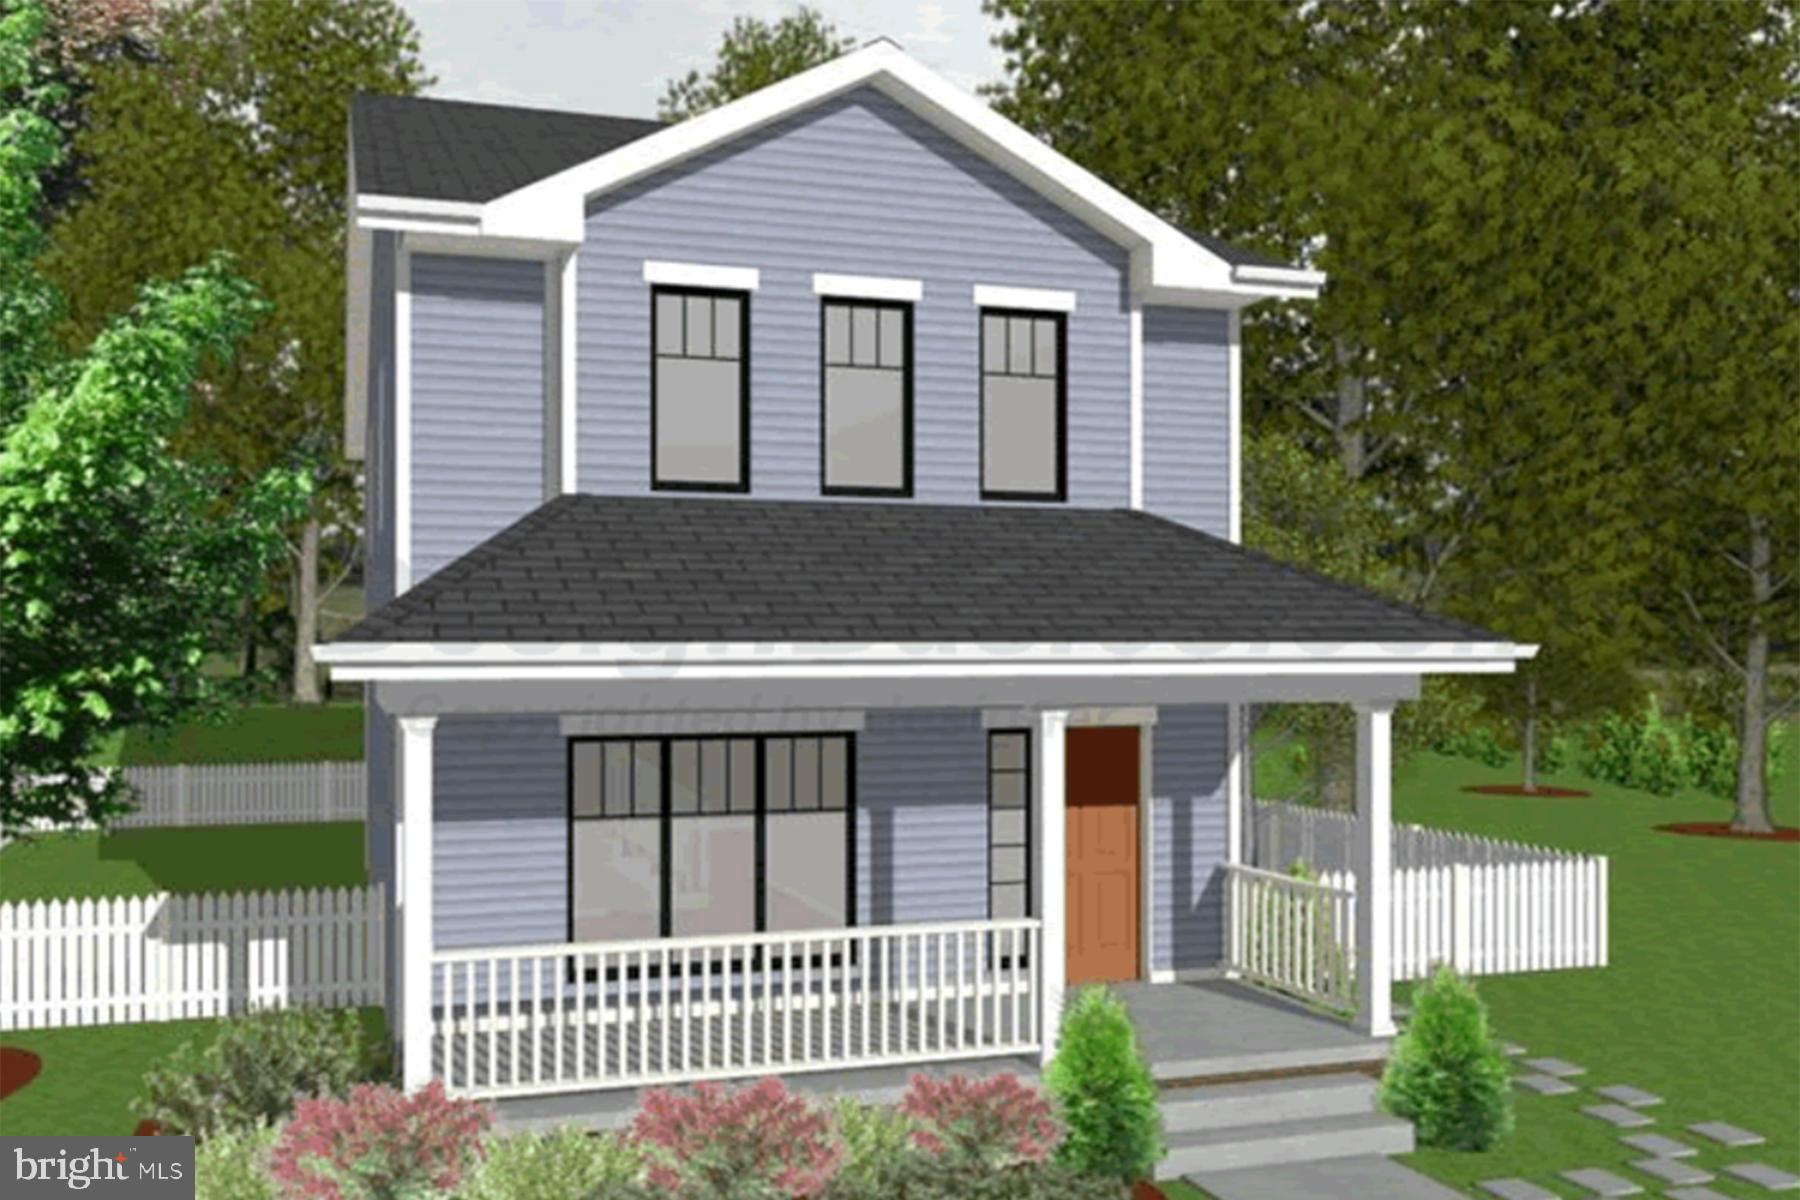 Brand new construction Proposed to be Built in the Yorkshire Estates community in Delmar! Quality construction by local, reputable builder - Malone Homes. Great location – minutes to parks in Downtown Delmar, shopping, dining, North Salisbury's shopping hub, 30mi to Fenwick Island/Ocean City. Low Delaware taxes & the conveniences of city services! The Griffin offers 3 bedrooms, 2.5 baths. Still time to pick our your finishes and make this home yours! High-end finishes come standard. Welcoming front porch and entryway. Spacious family room. Designer kitchen w/granite counters, stainless steel appliance package - built-in microwave, dishwasher, fridge, and electric stove, nice cabinetry - none of your basic builder-grade here! Luxury VP flooring throughout the living, dining, bathrooms, & kitchen. A half bath and a utility room, mudroom w/coat closet. Upstairs, master bedroom with full, en-suite bath, walk-in closet. 2 additional bedrooms, a 2nd full bath. Sizes, taxes approximate.  All choices are from builder-provided selections. ALL work performed by builder's contractors and subcontractors. Plans, listings, photos, renderings, sizes, acreages - all for reference only, and may show upgrades & options not included in list price.. Owner is a licensed realtor; agent has financial interest. Pricing & availability subject to change *** As of 04-12-2021, home has NOT been started ***